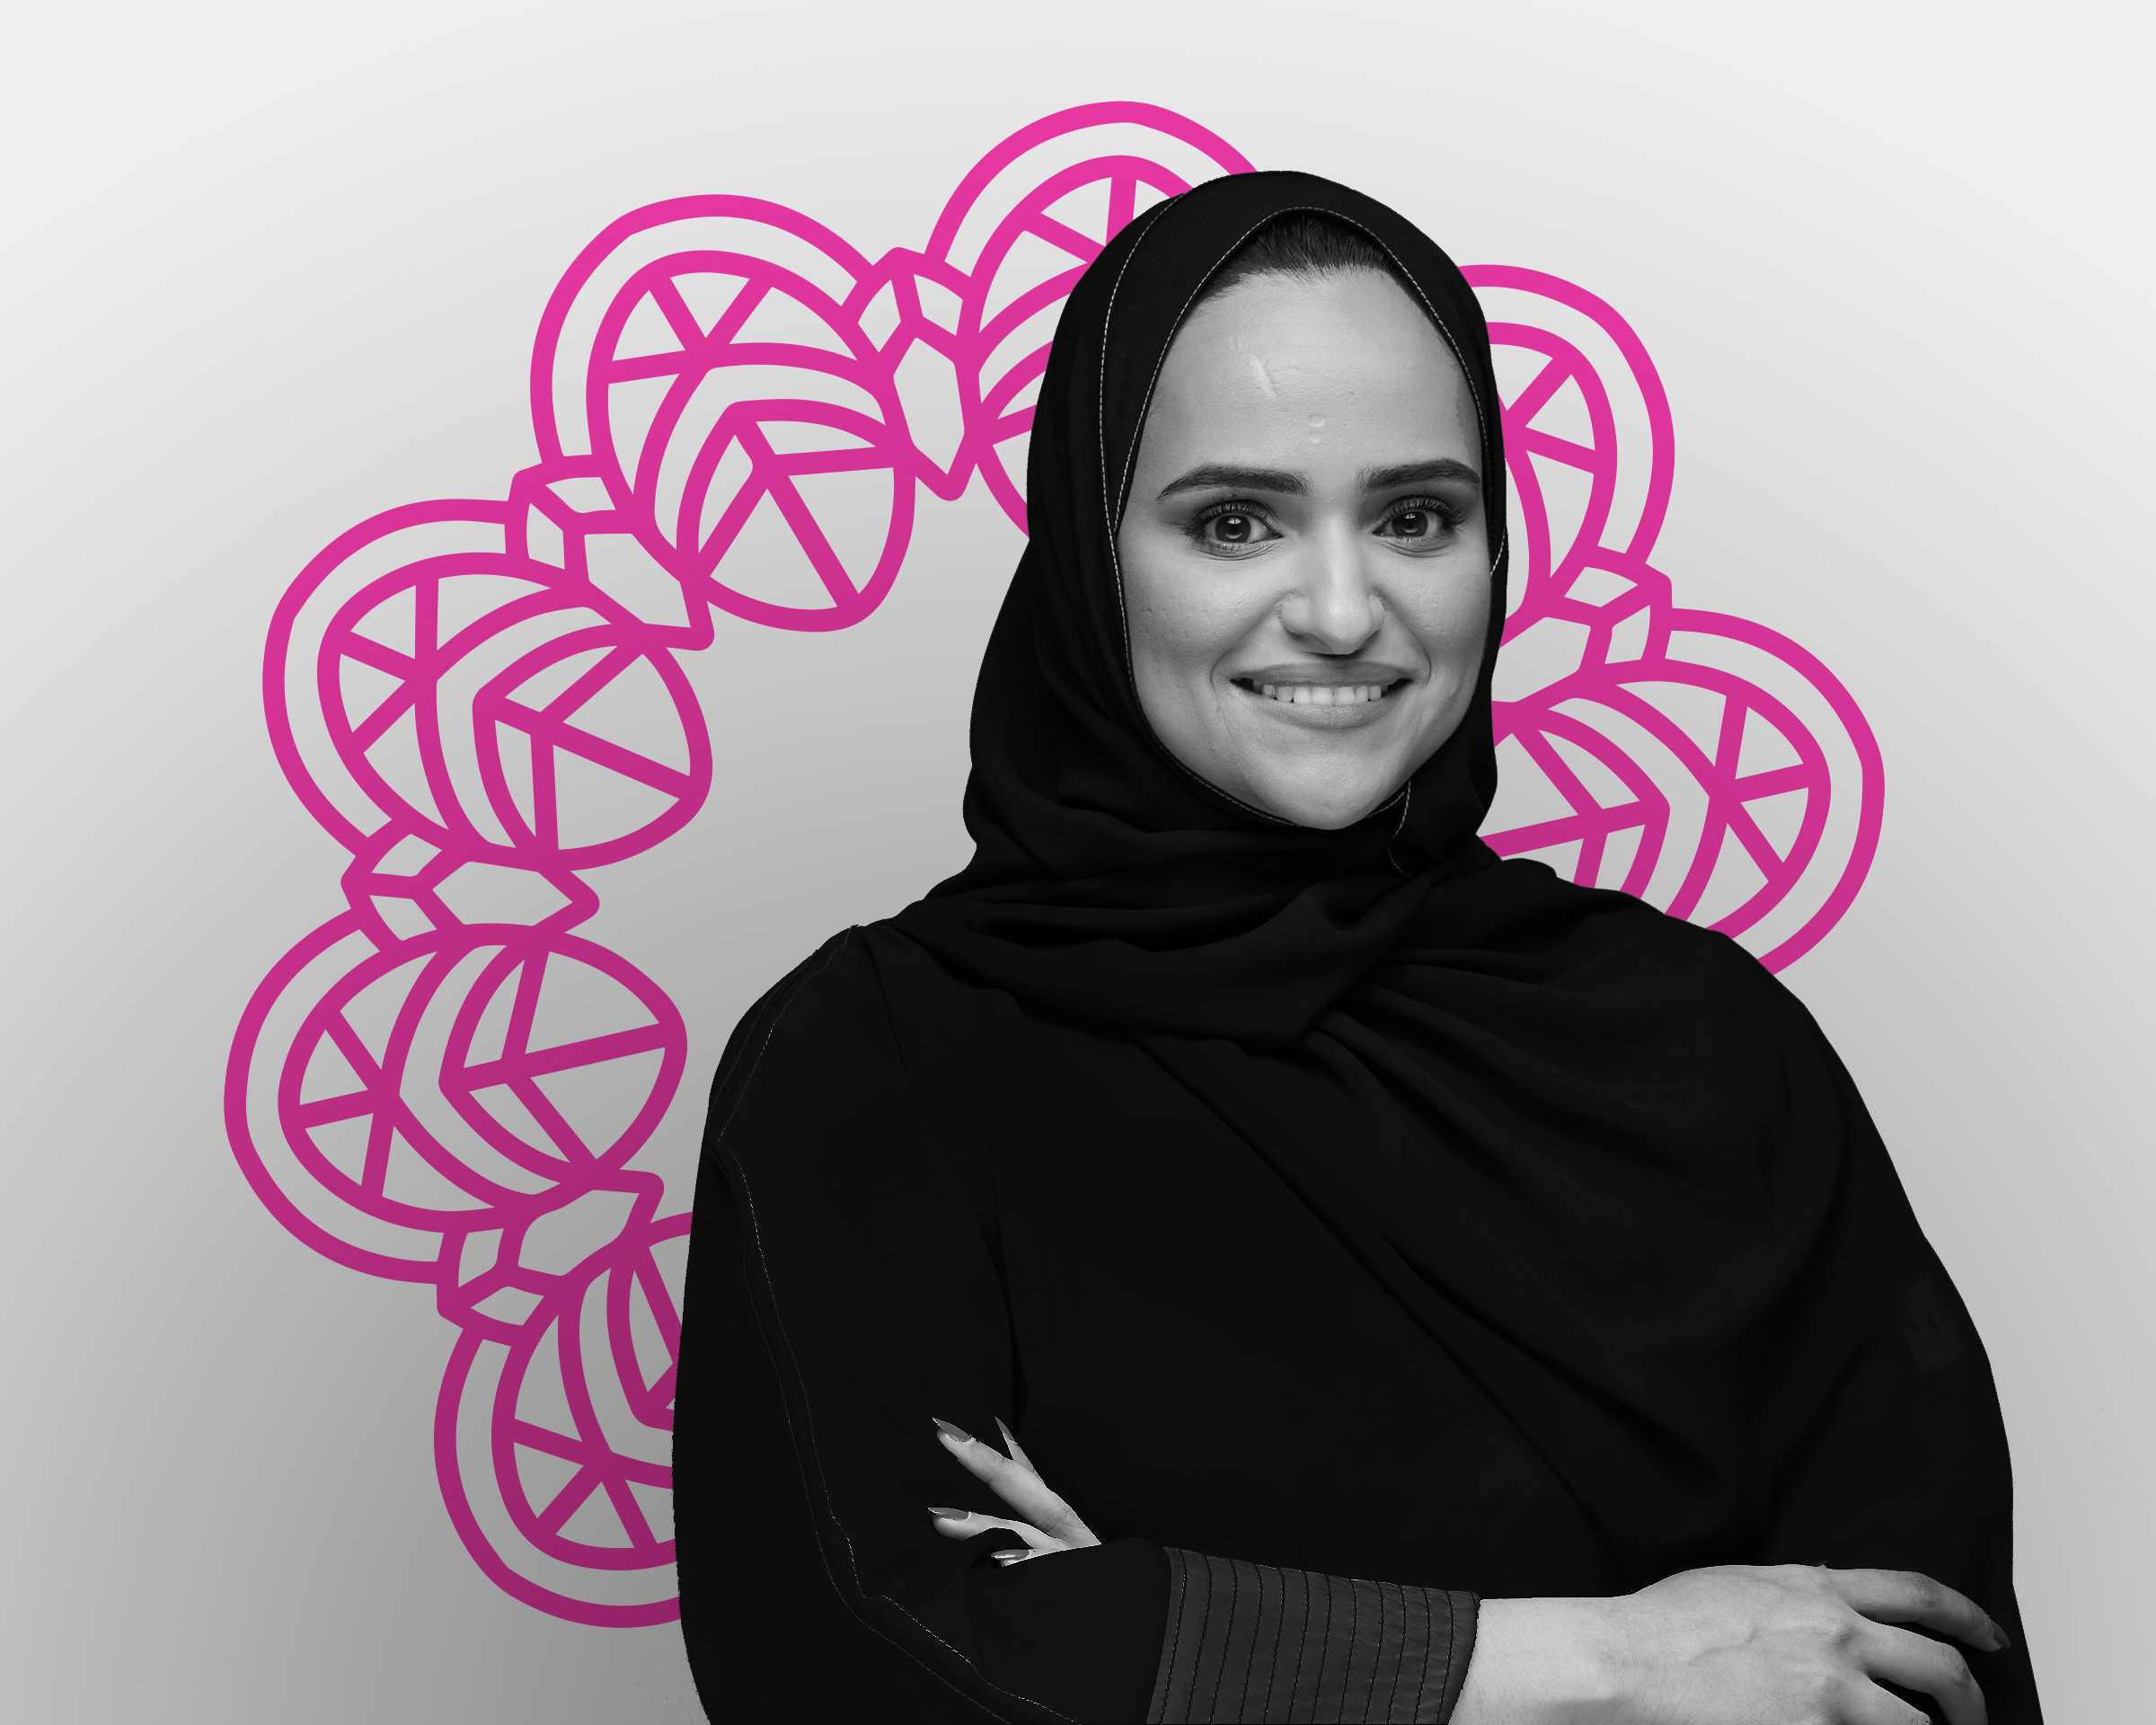 Muneera Al-Kubaisy - 31 years oldFounder and CEO of Good Life Market